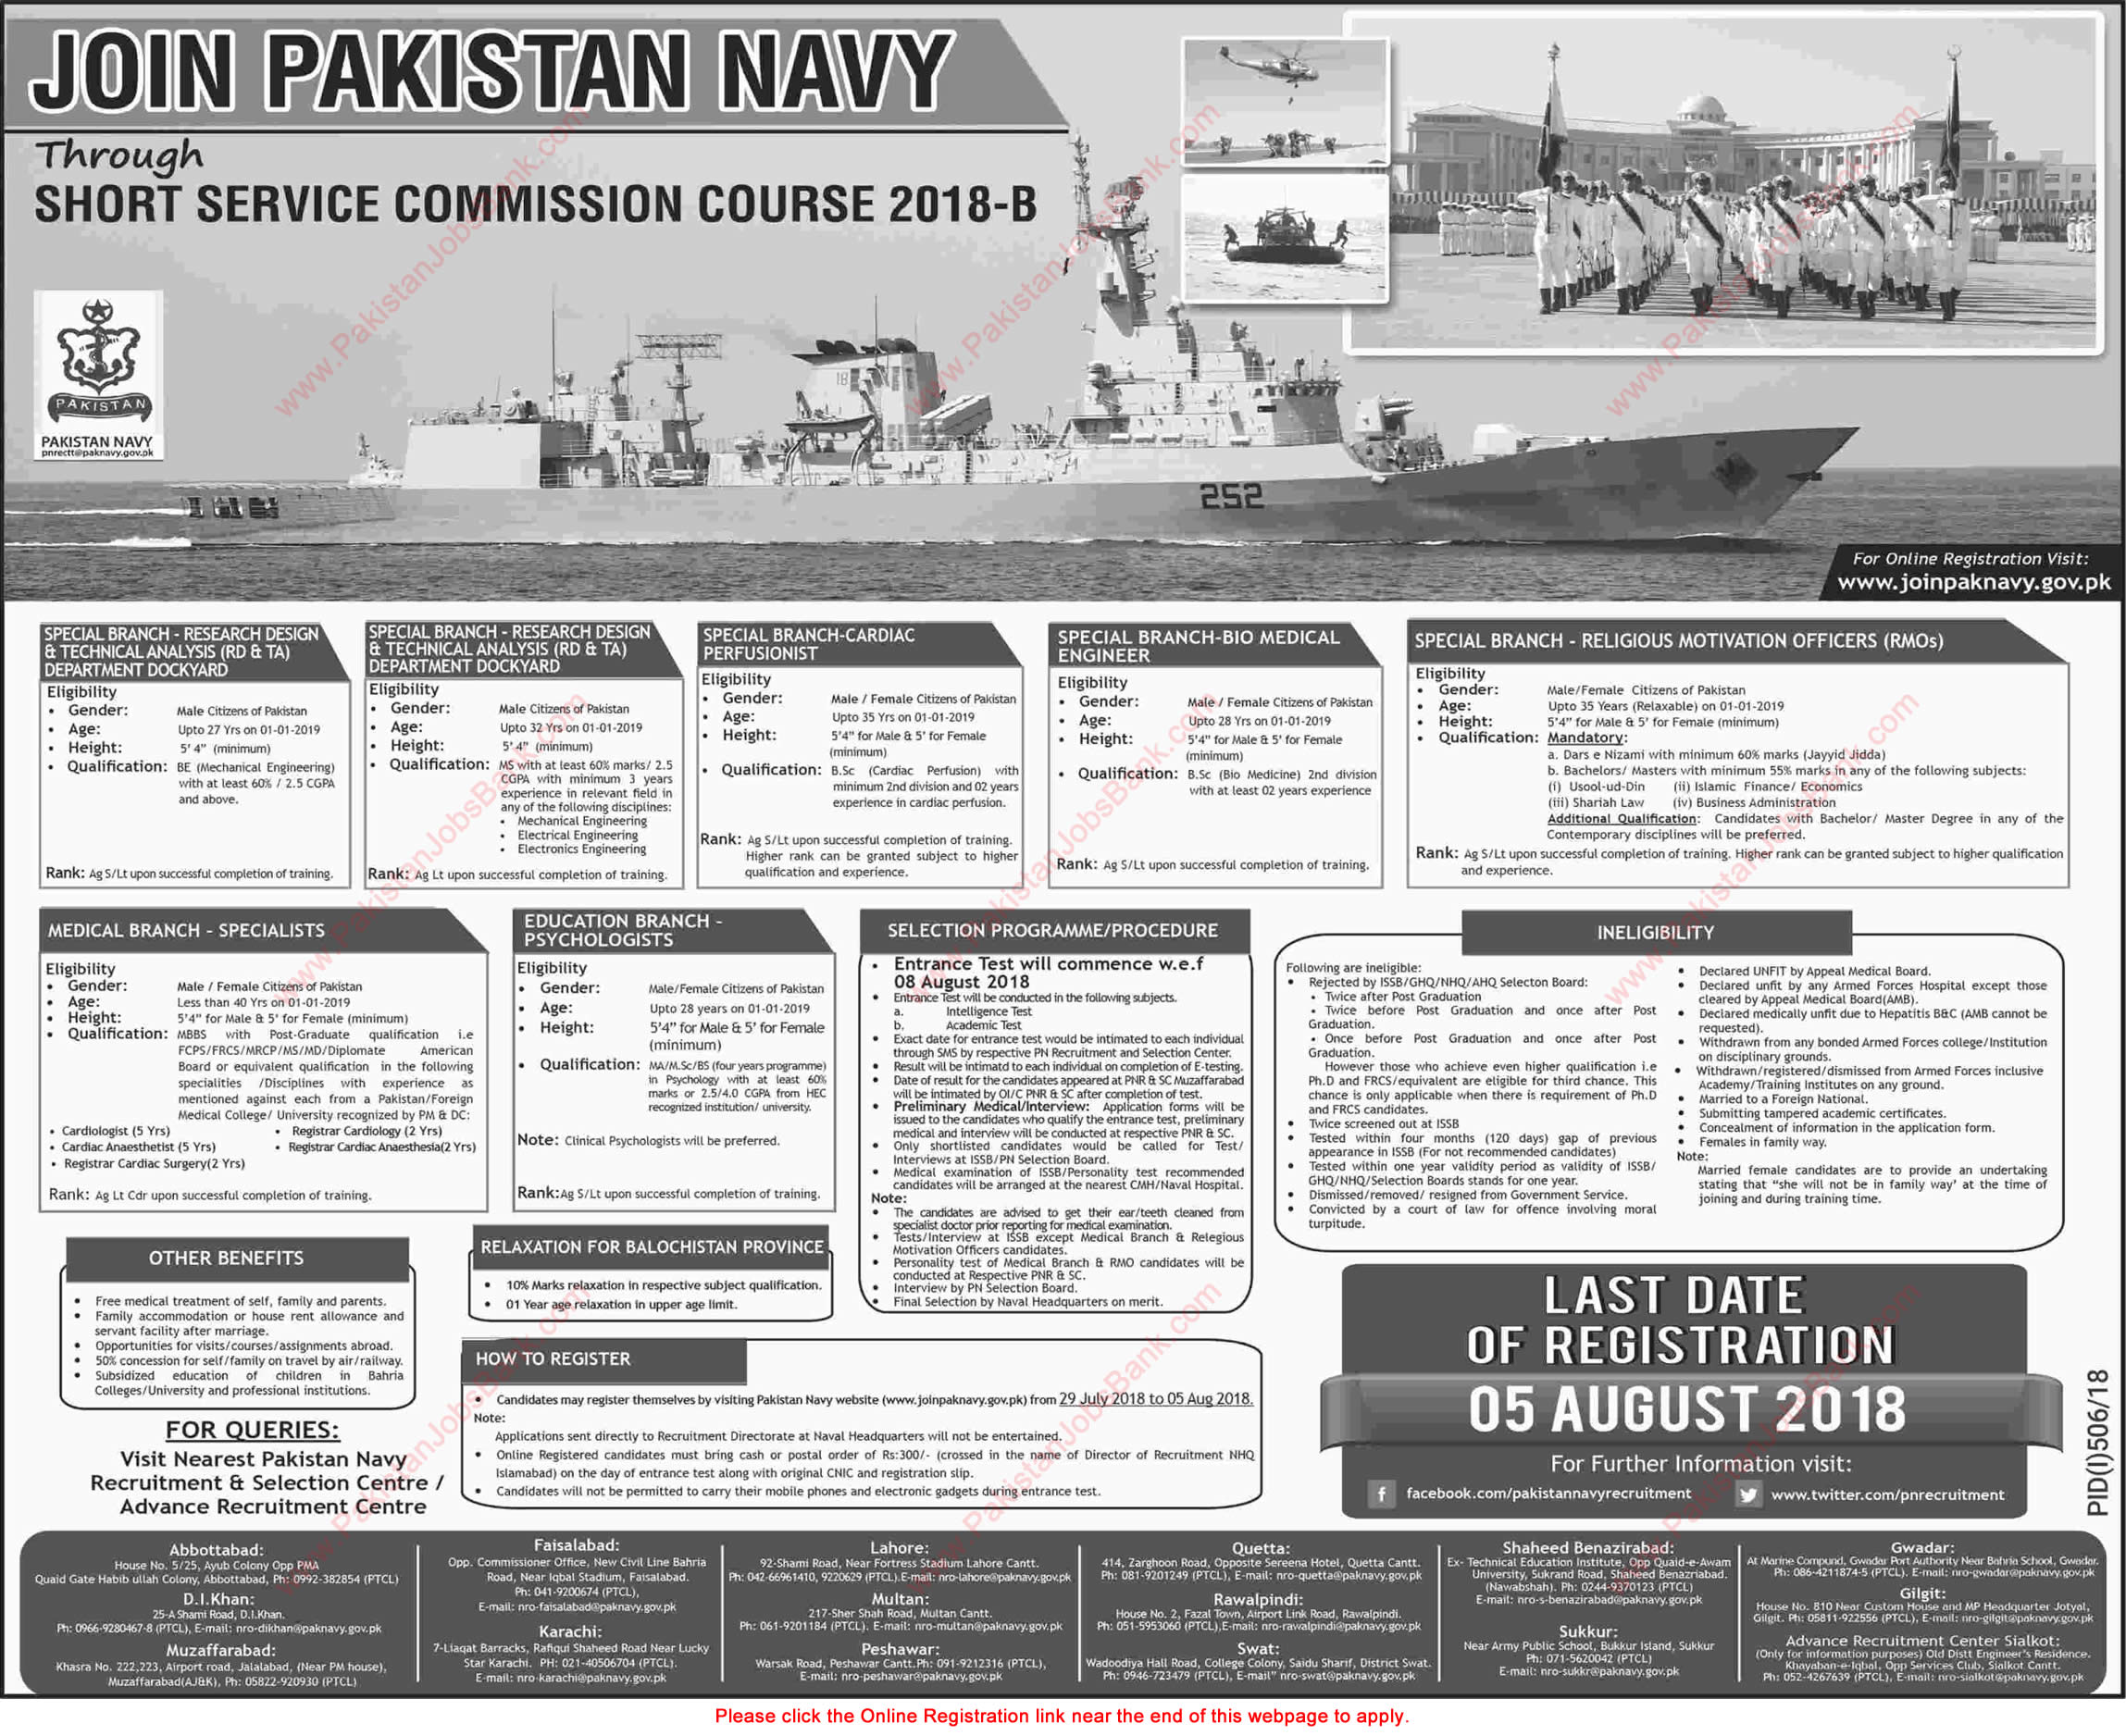 Join Pakistan Navy through Short Service Commission Course 2018-B Online Registration Latest / New